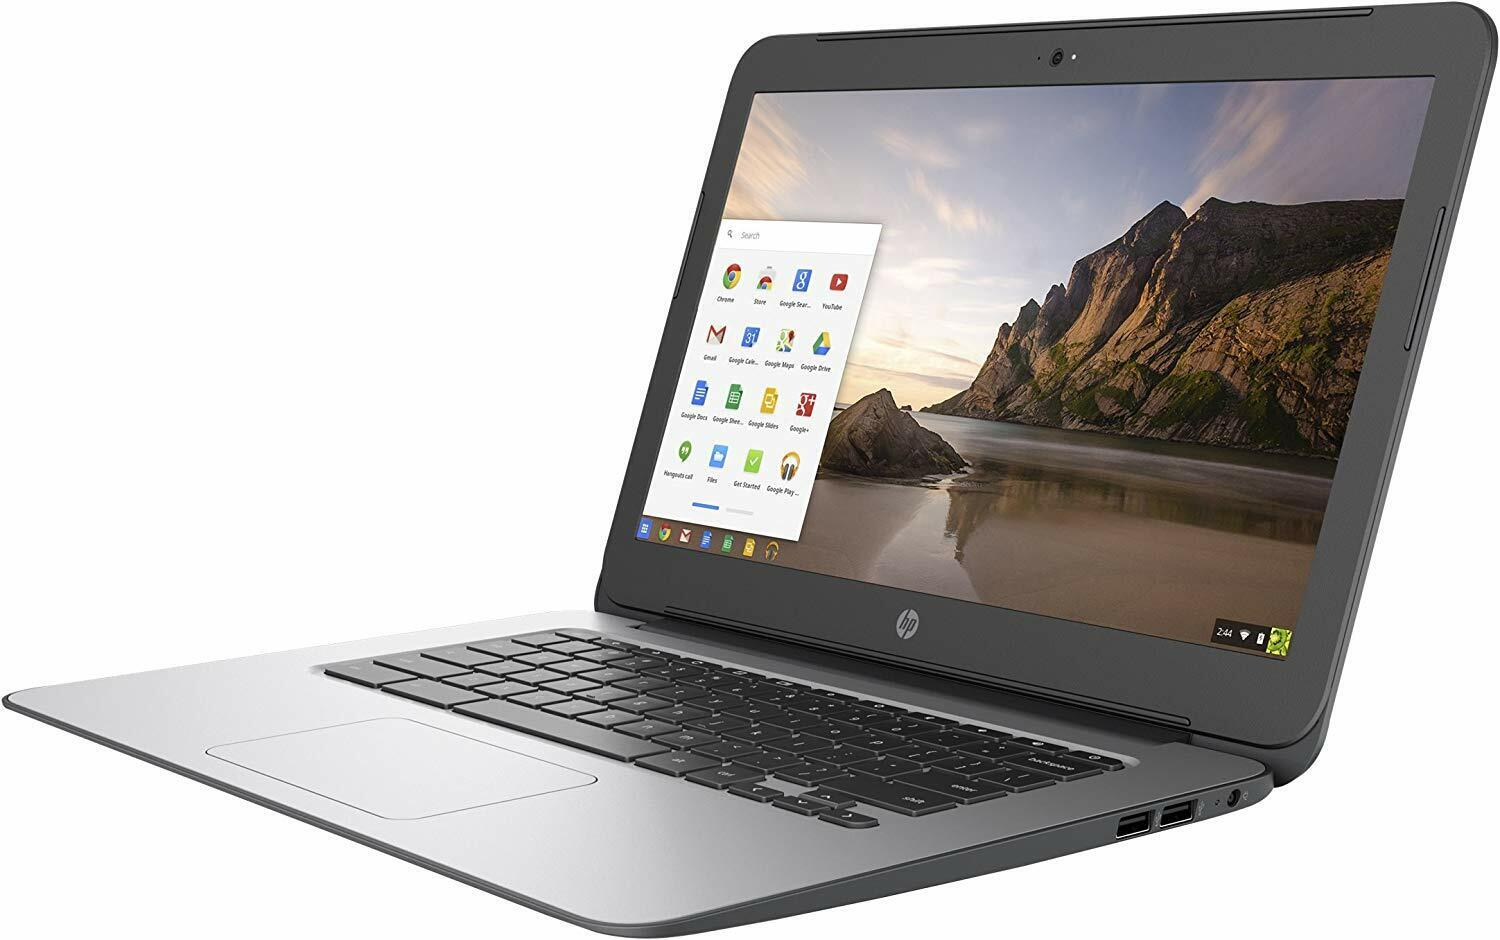 "HP Chromebook 14 G3, 16GB SSD, 4GB RAM, WiFi, Webcam, 14"", NVIDIA Tegra 2.10GHz"